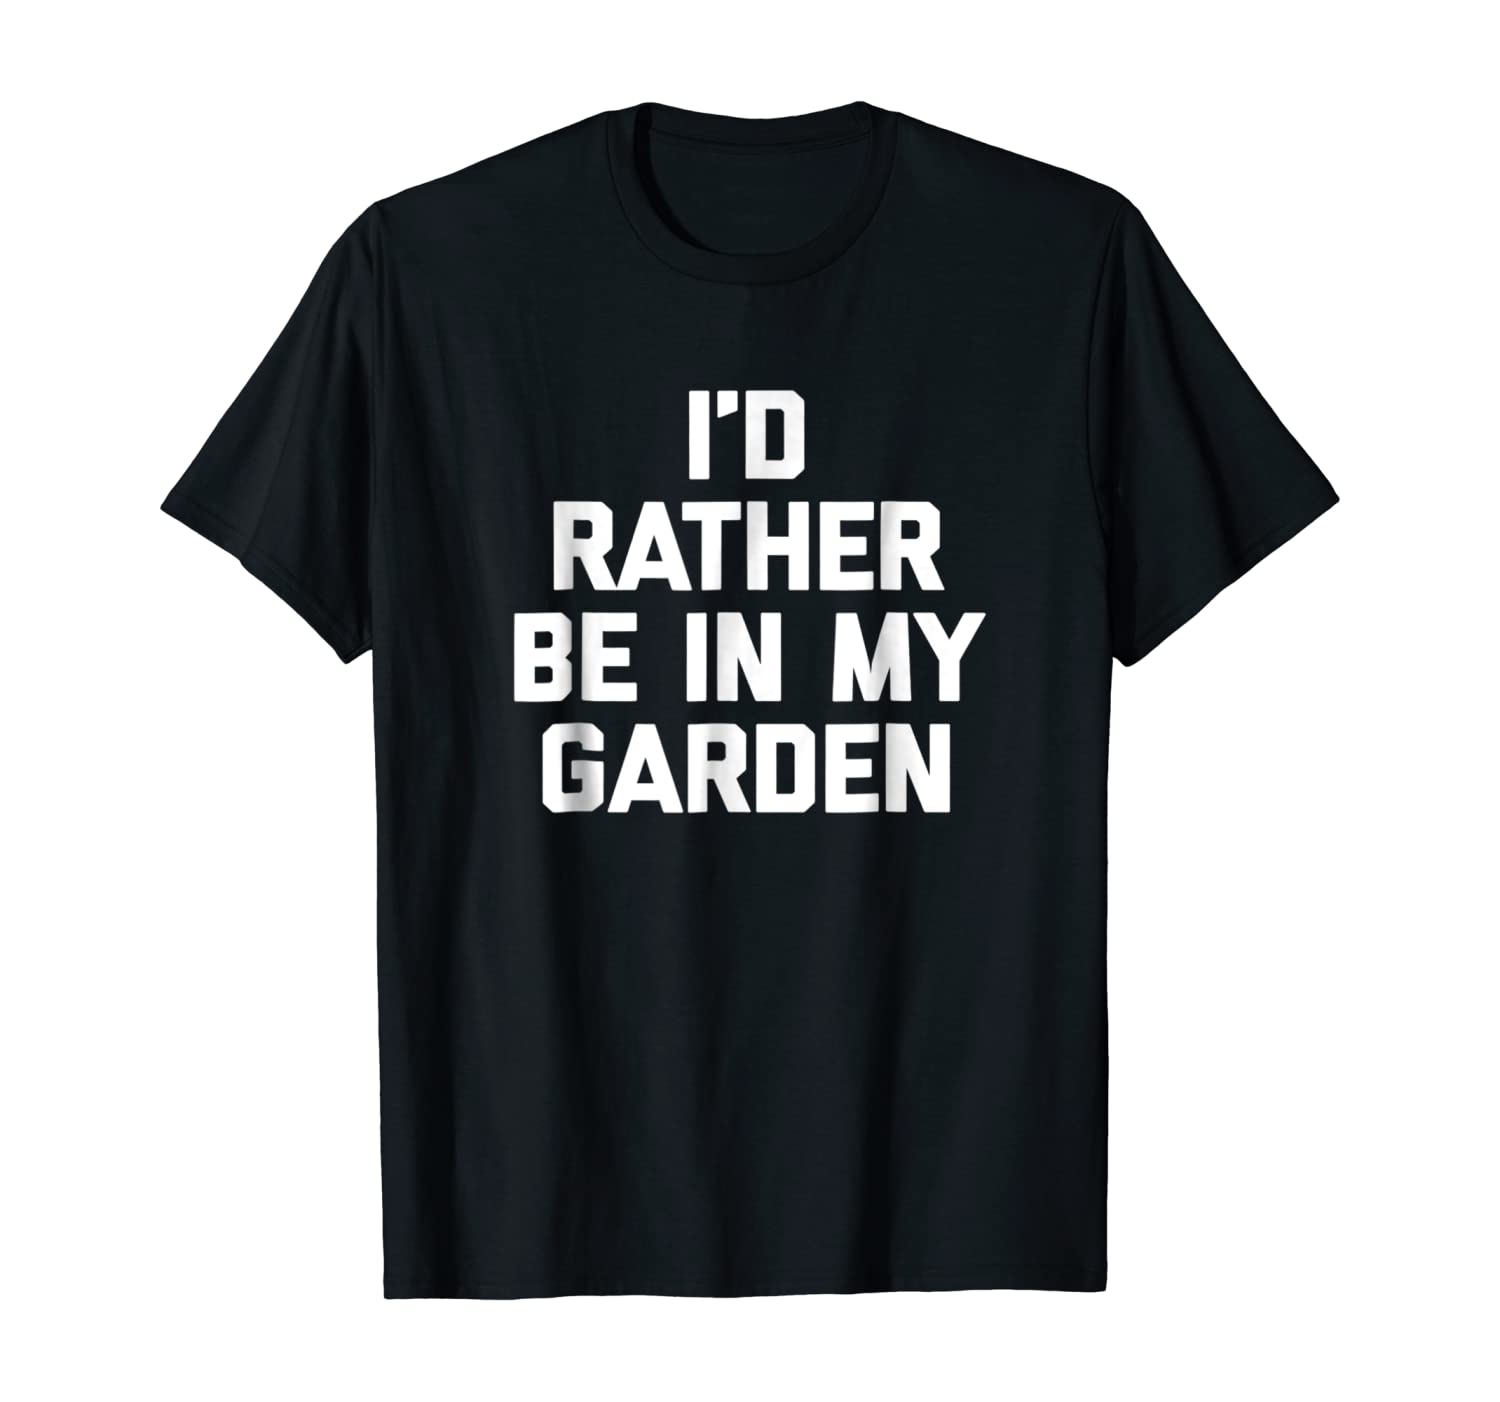 I'd Rather Be In My Garden T-Shirt funny saying sarcastic